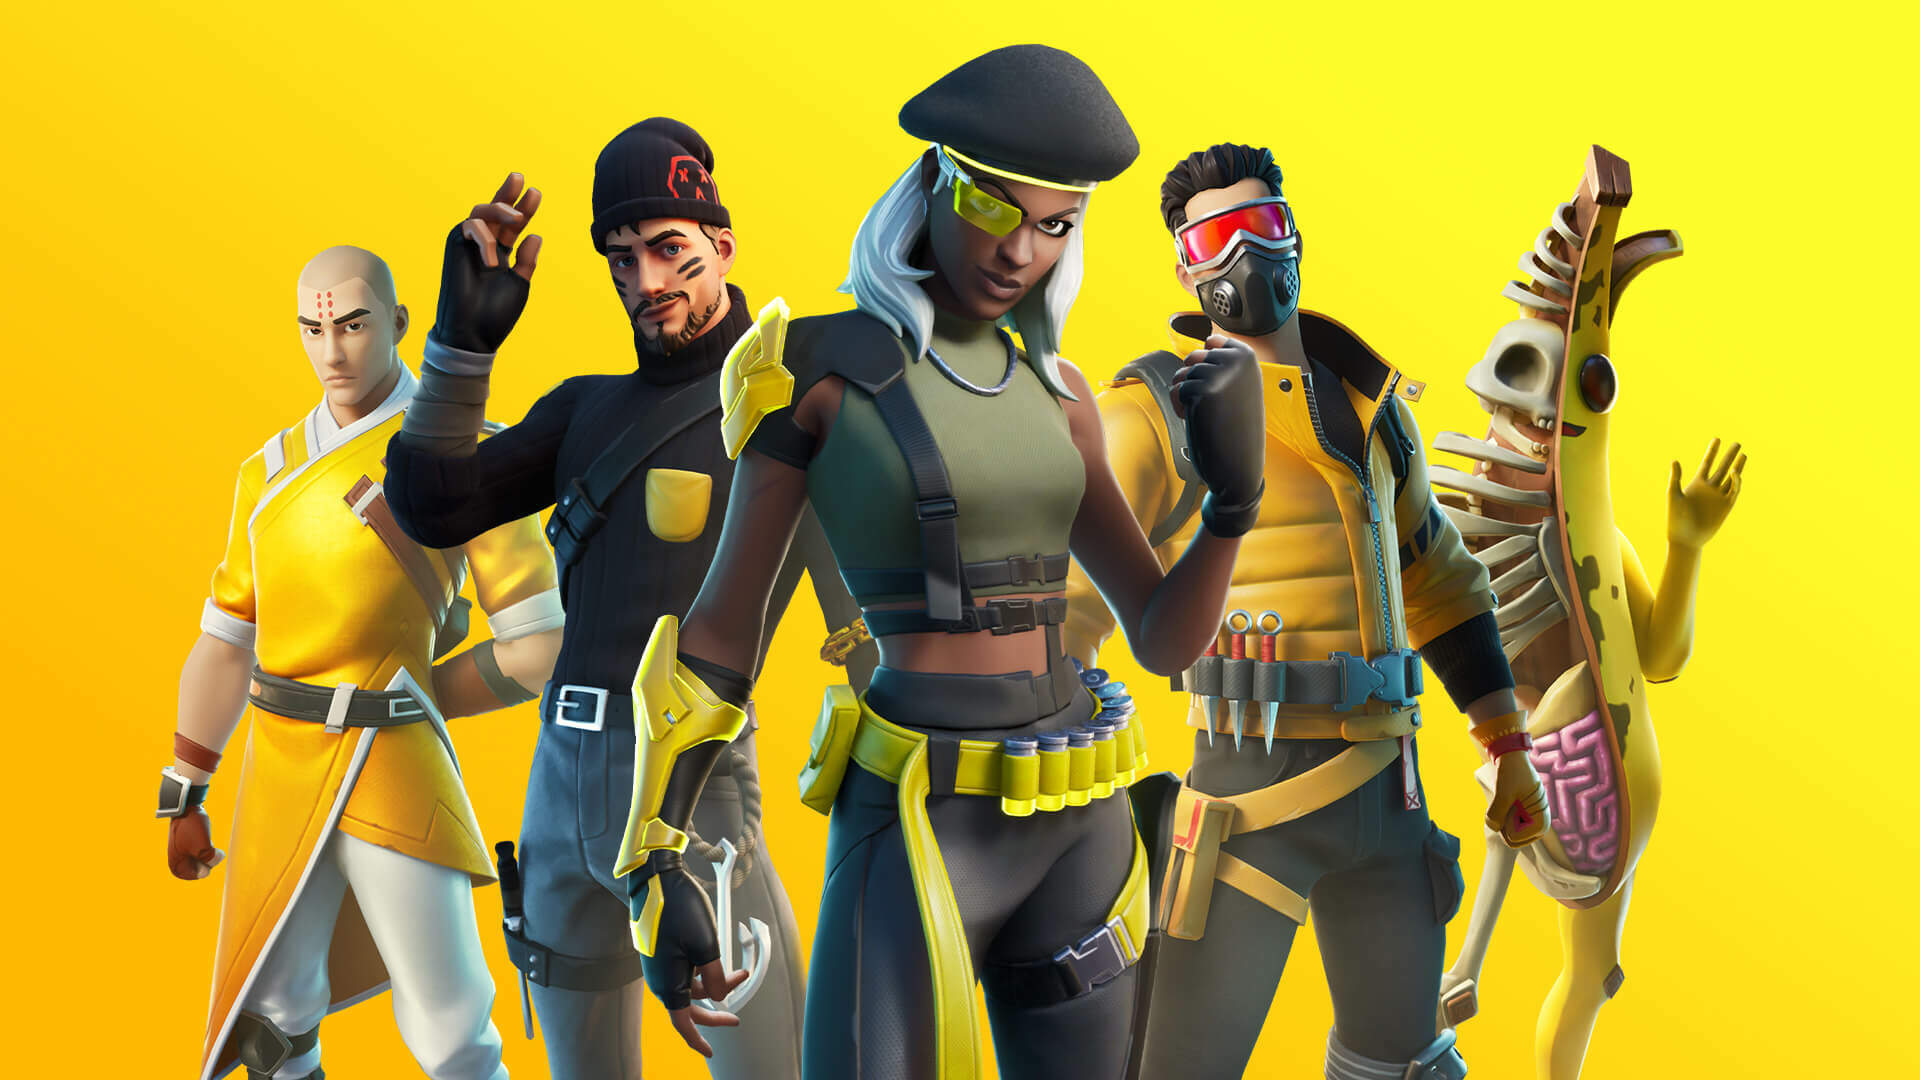 Fortnite's Next Big Party Royale Event Is a Trailer for Christopher Nolan's Tenet